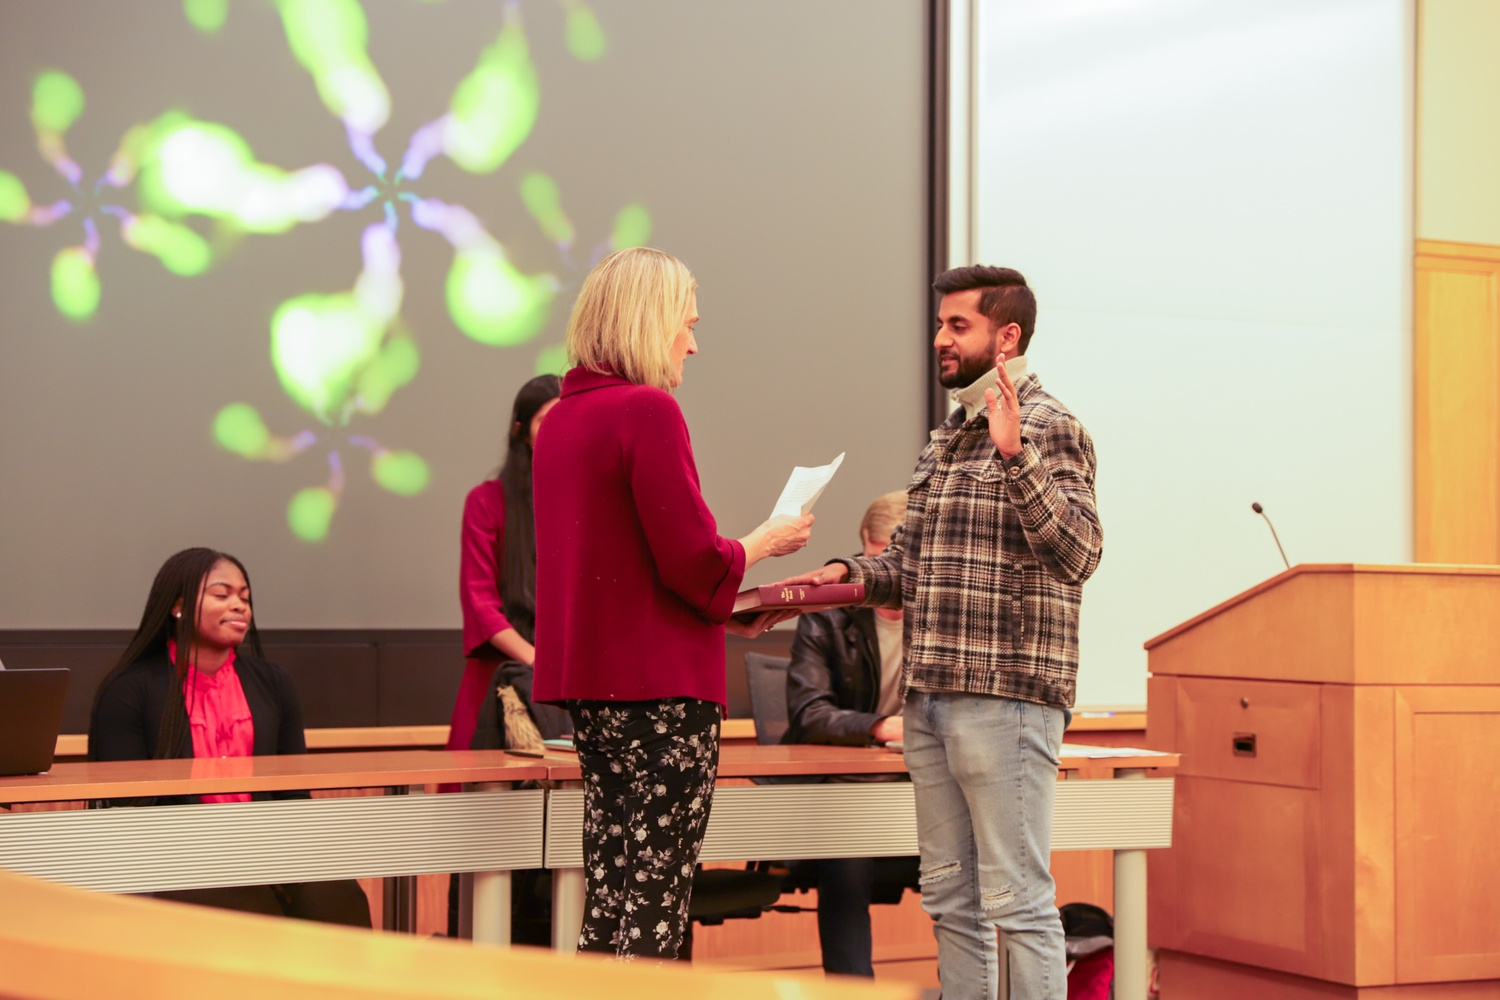 The incoming Undergraduate Council president, James A. Mathew '21, was formally inducted at the inauguration ceremony by Dean of Students Katherine G. O'Dair.